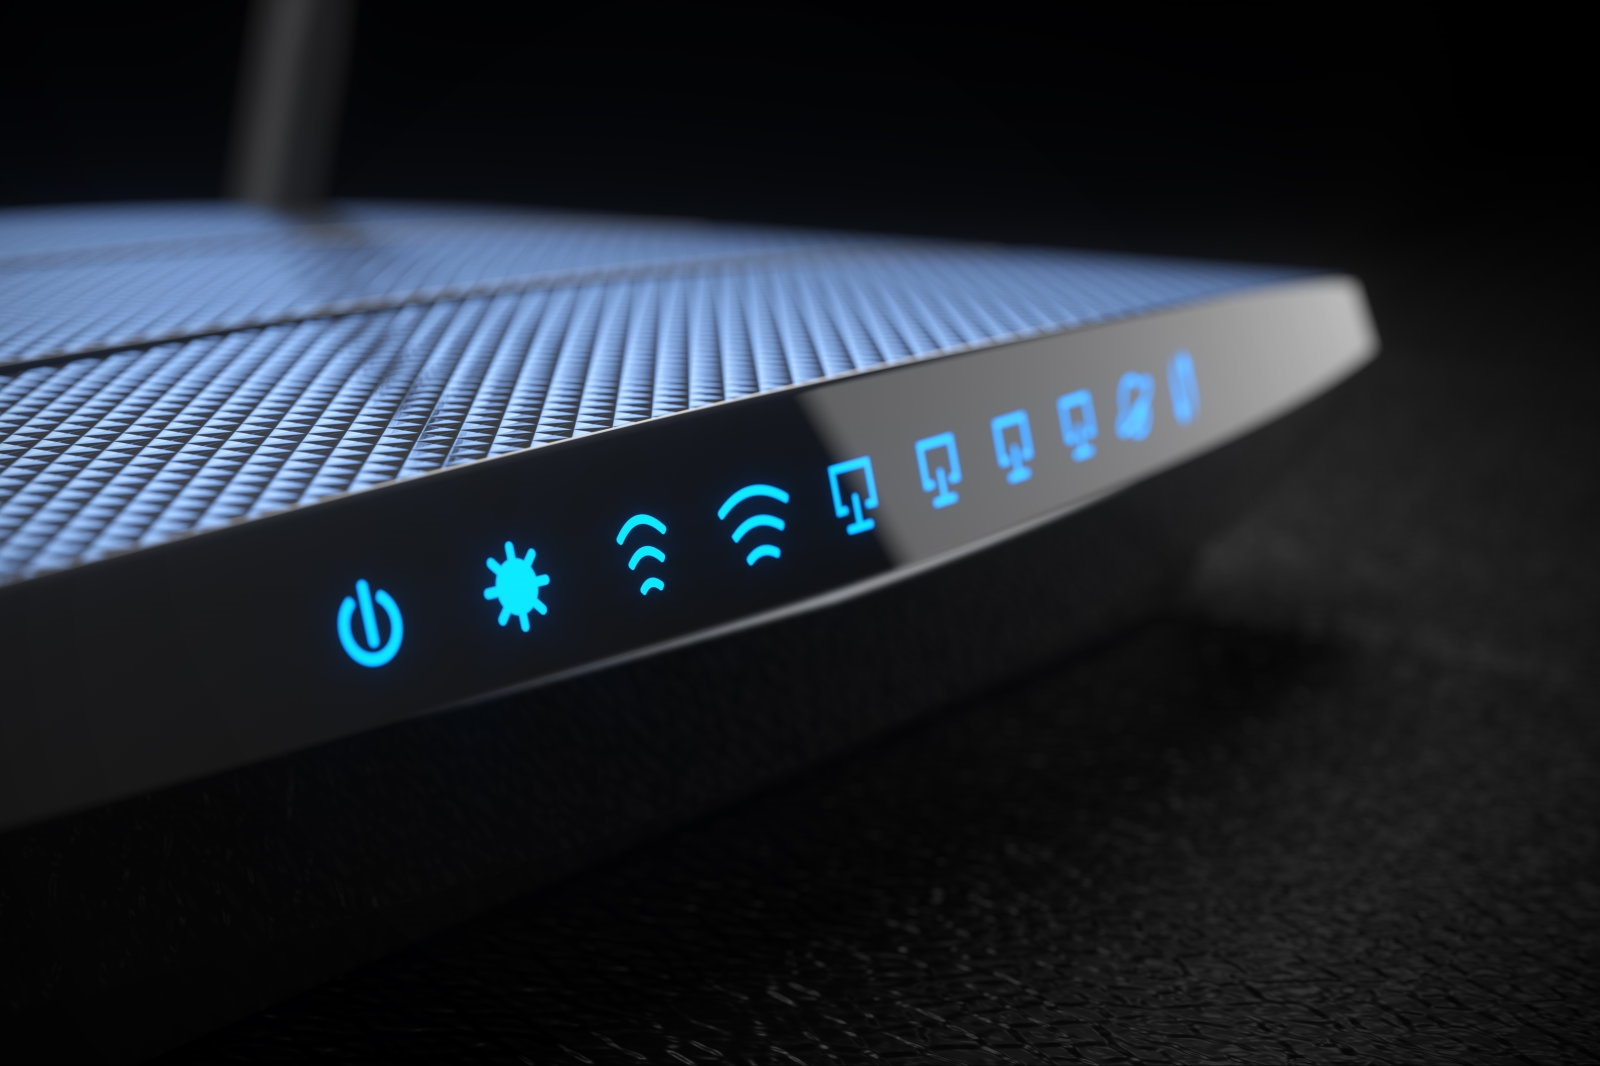 WiFi's tougher WPA3 security is ready | DeviceDaily.com